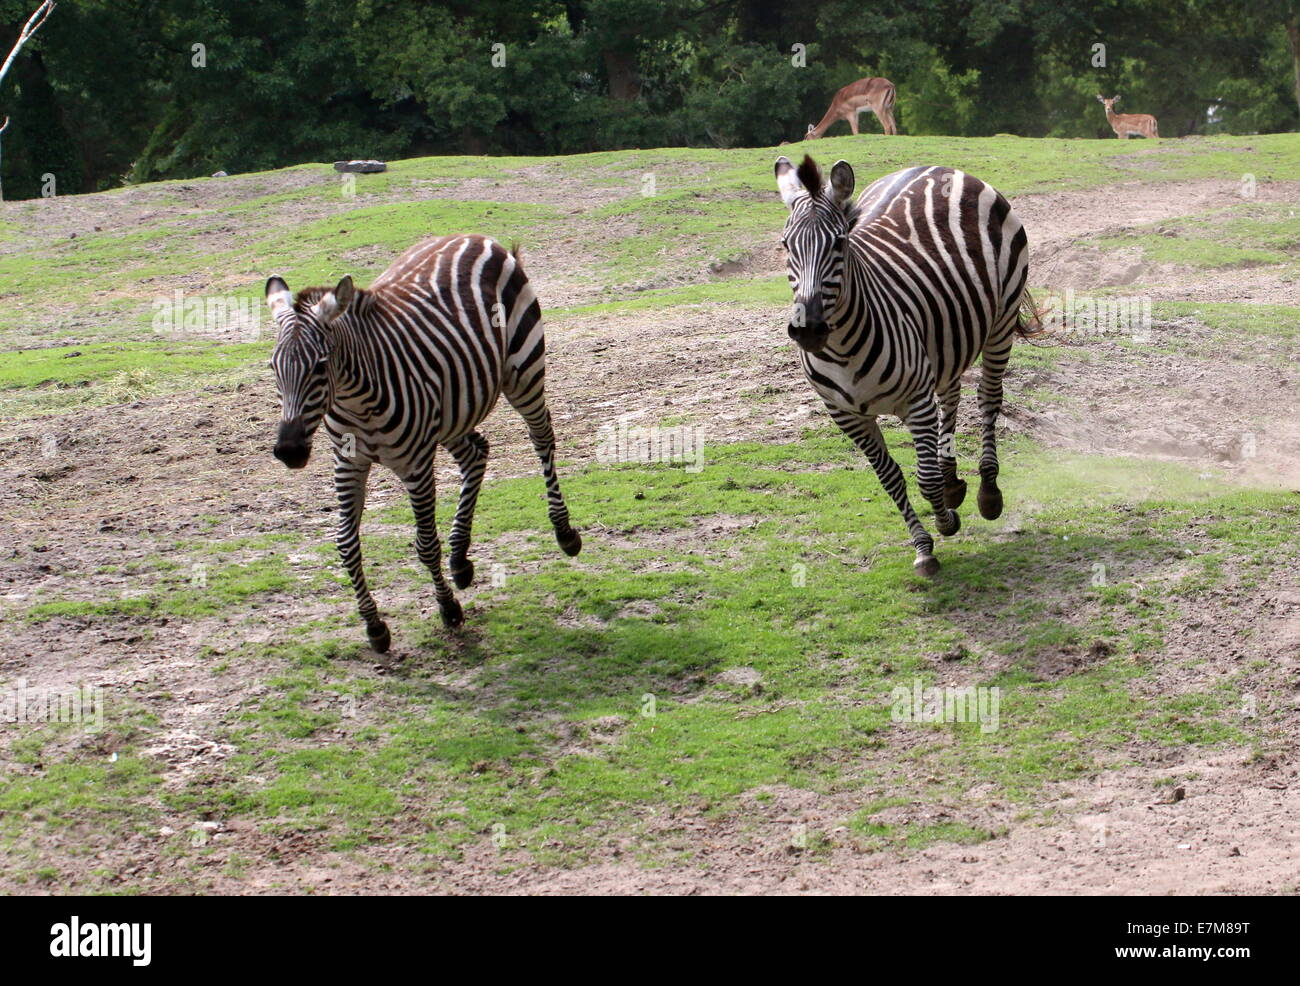 Two fast running & spirited  Grant's zebras (Equus quagga boehmi) chasing each other - Stock Image